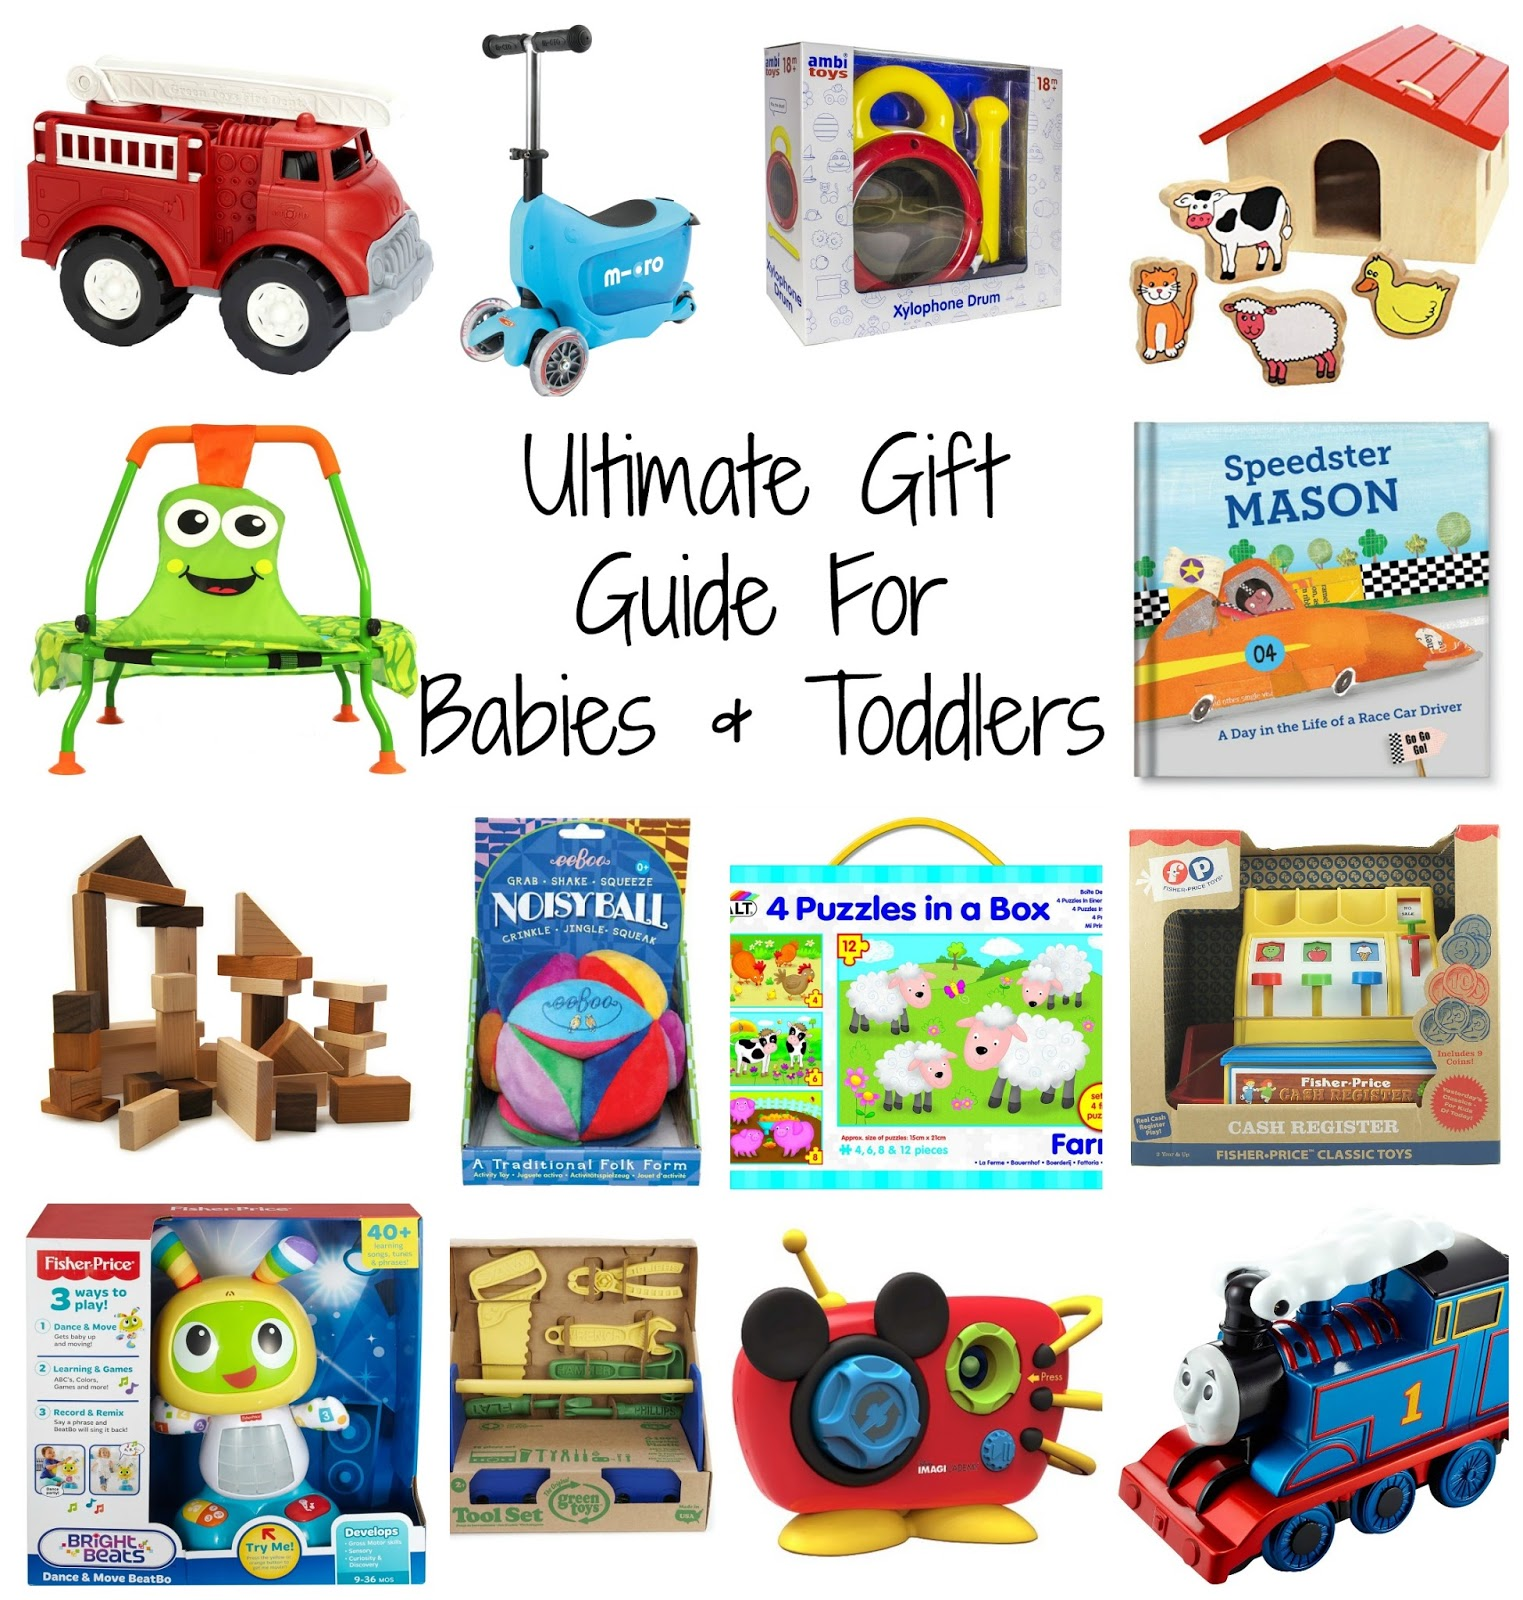 Holiday Gift Guide Shopping for Babies & Toddlers The Chirping Moms